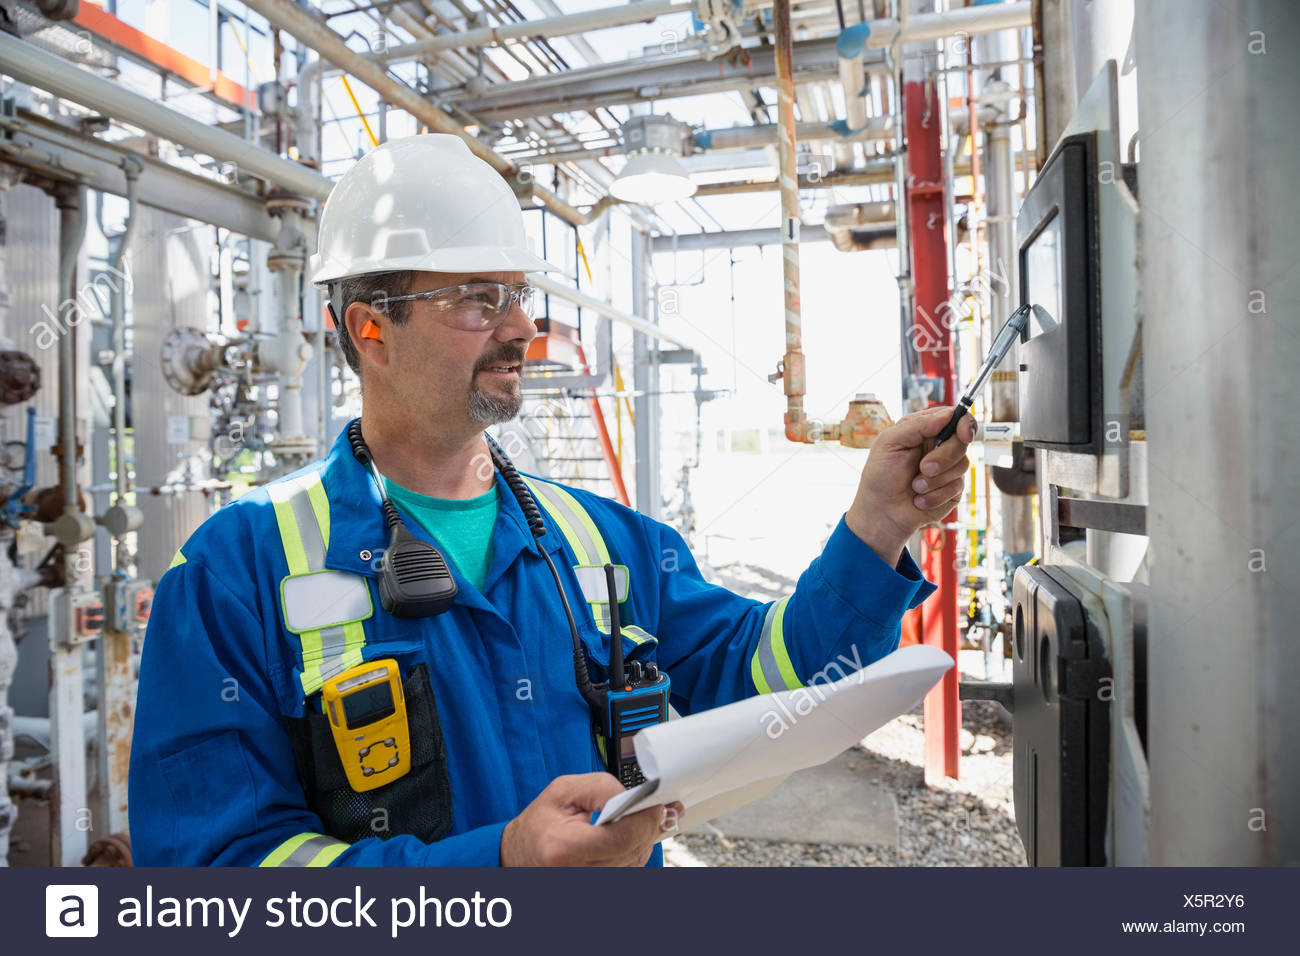 Male worker checking equipment at gas plant - Stock Image